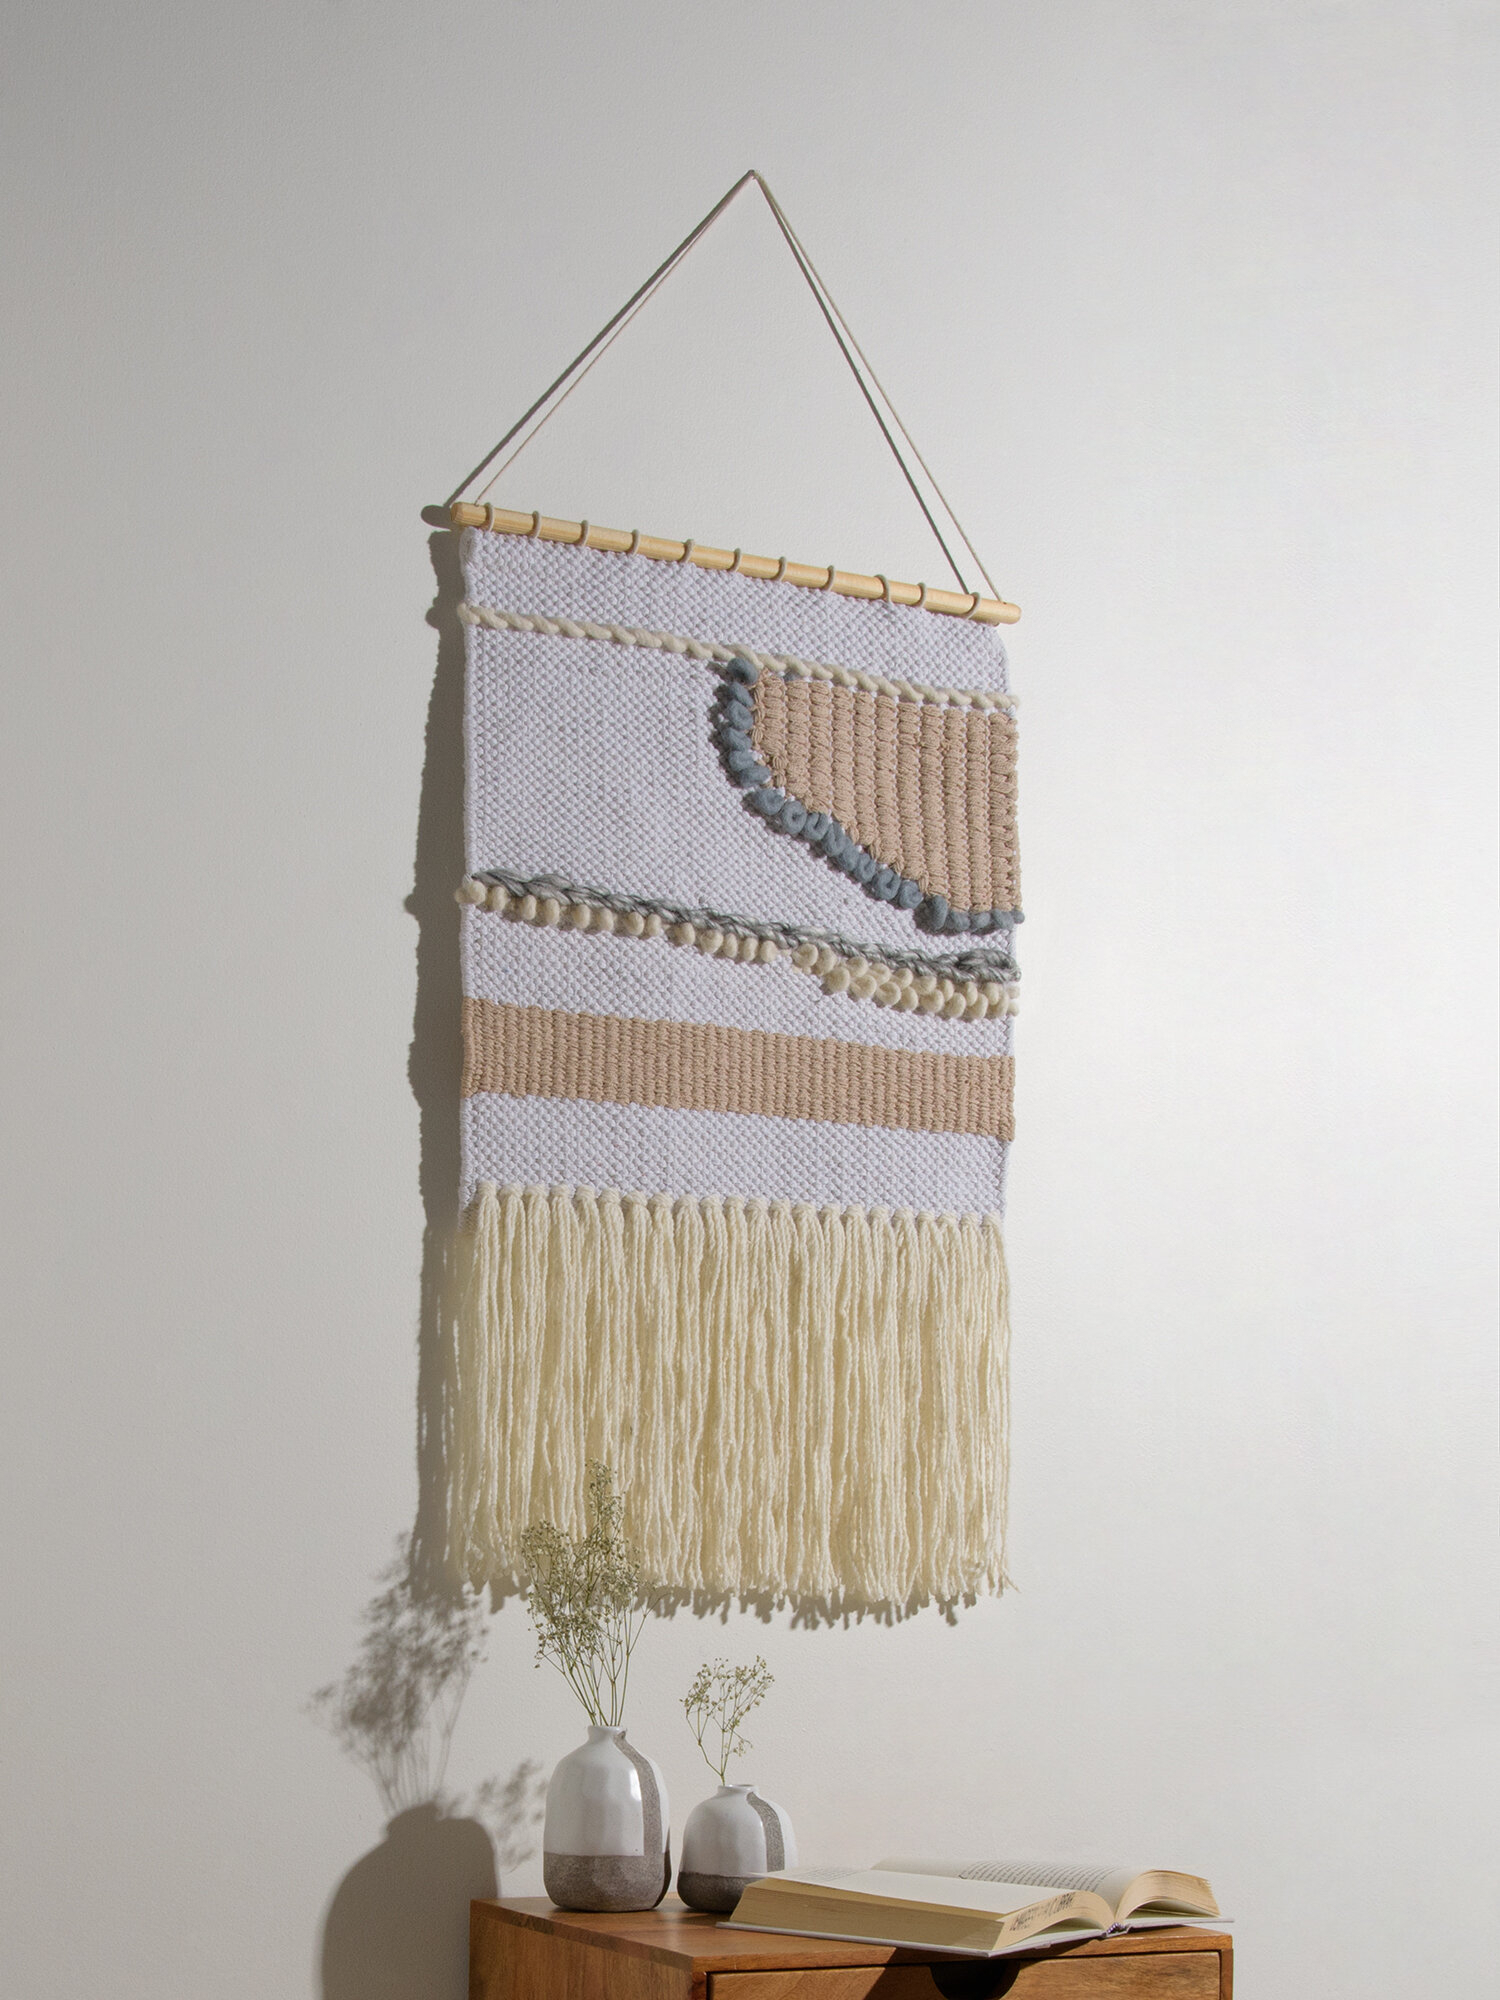 Blended Fabric Wall Hanging With Hanging Accessories Included Pertaining To 2018 Blended Fabric Wall Hangings (View 6 of 20)